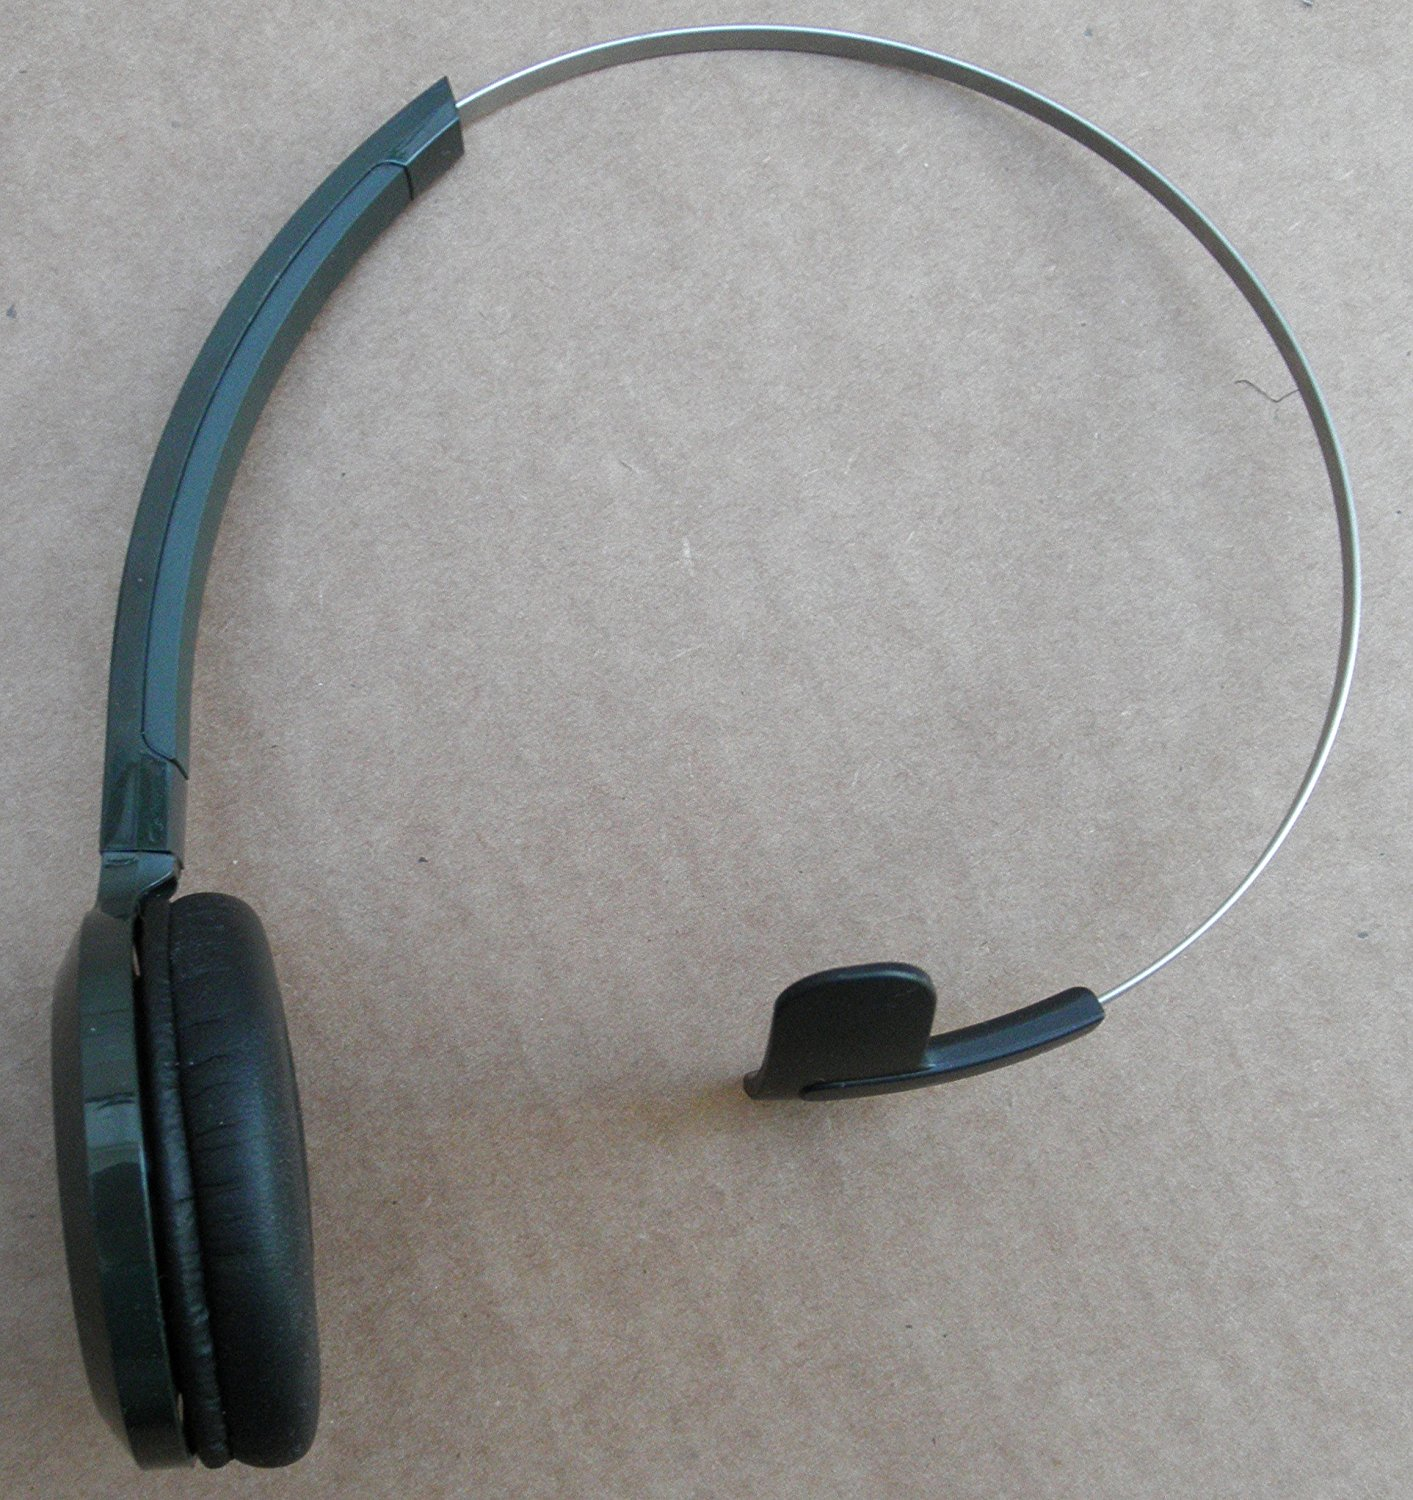 Genuine Headband for Logitech BH870 Wireless Bluetooth Headset - Bluetooth earpiece NOT included